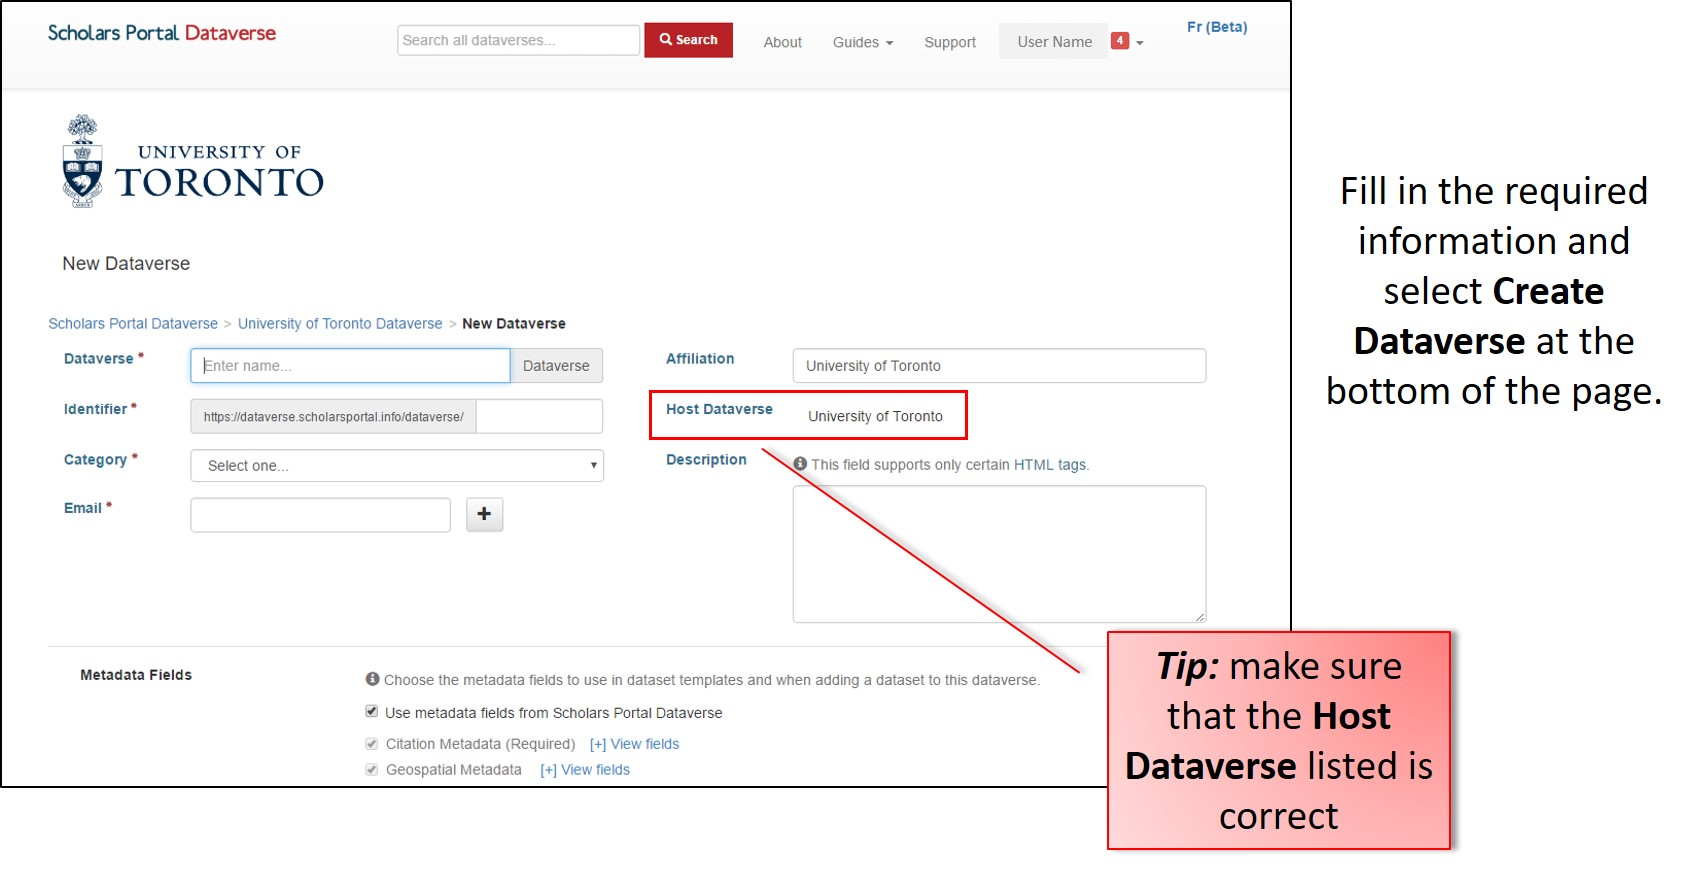 Fill in the required information and select Create Dataverse at the bottom of the page. Tip: make sure that the Host Dataverse listed is correct